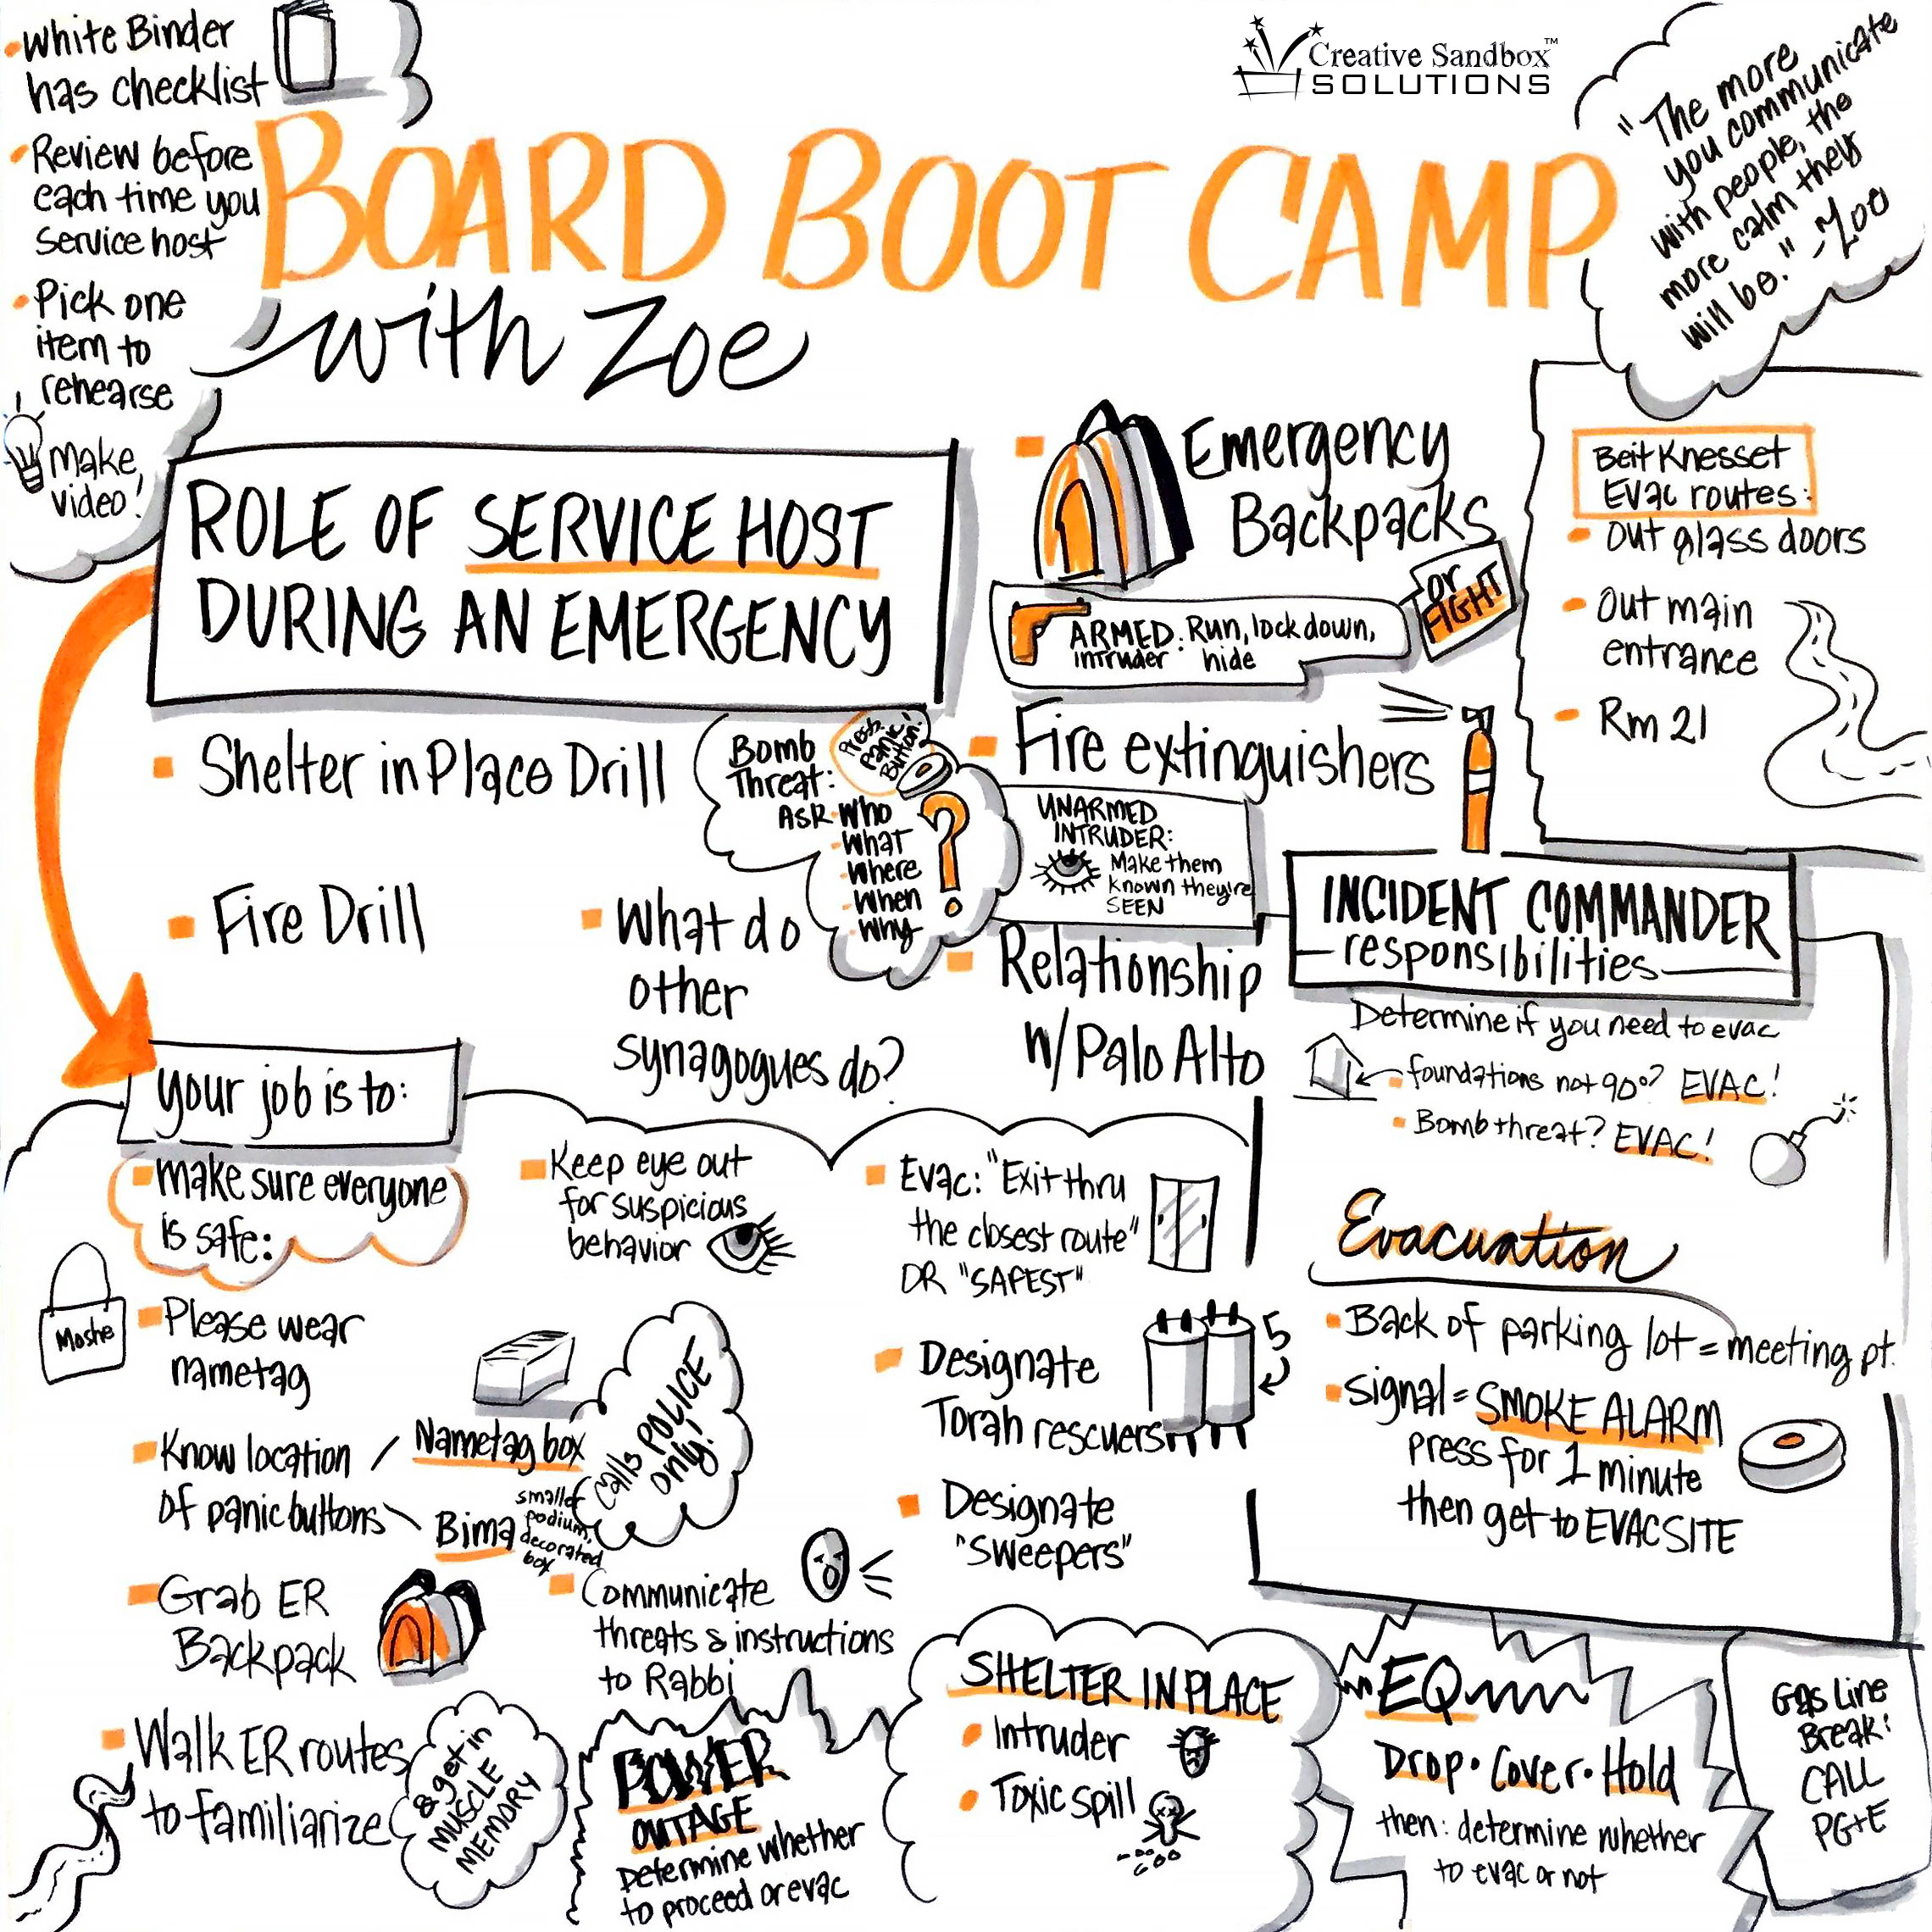 Board Boot Camp with Zoe